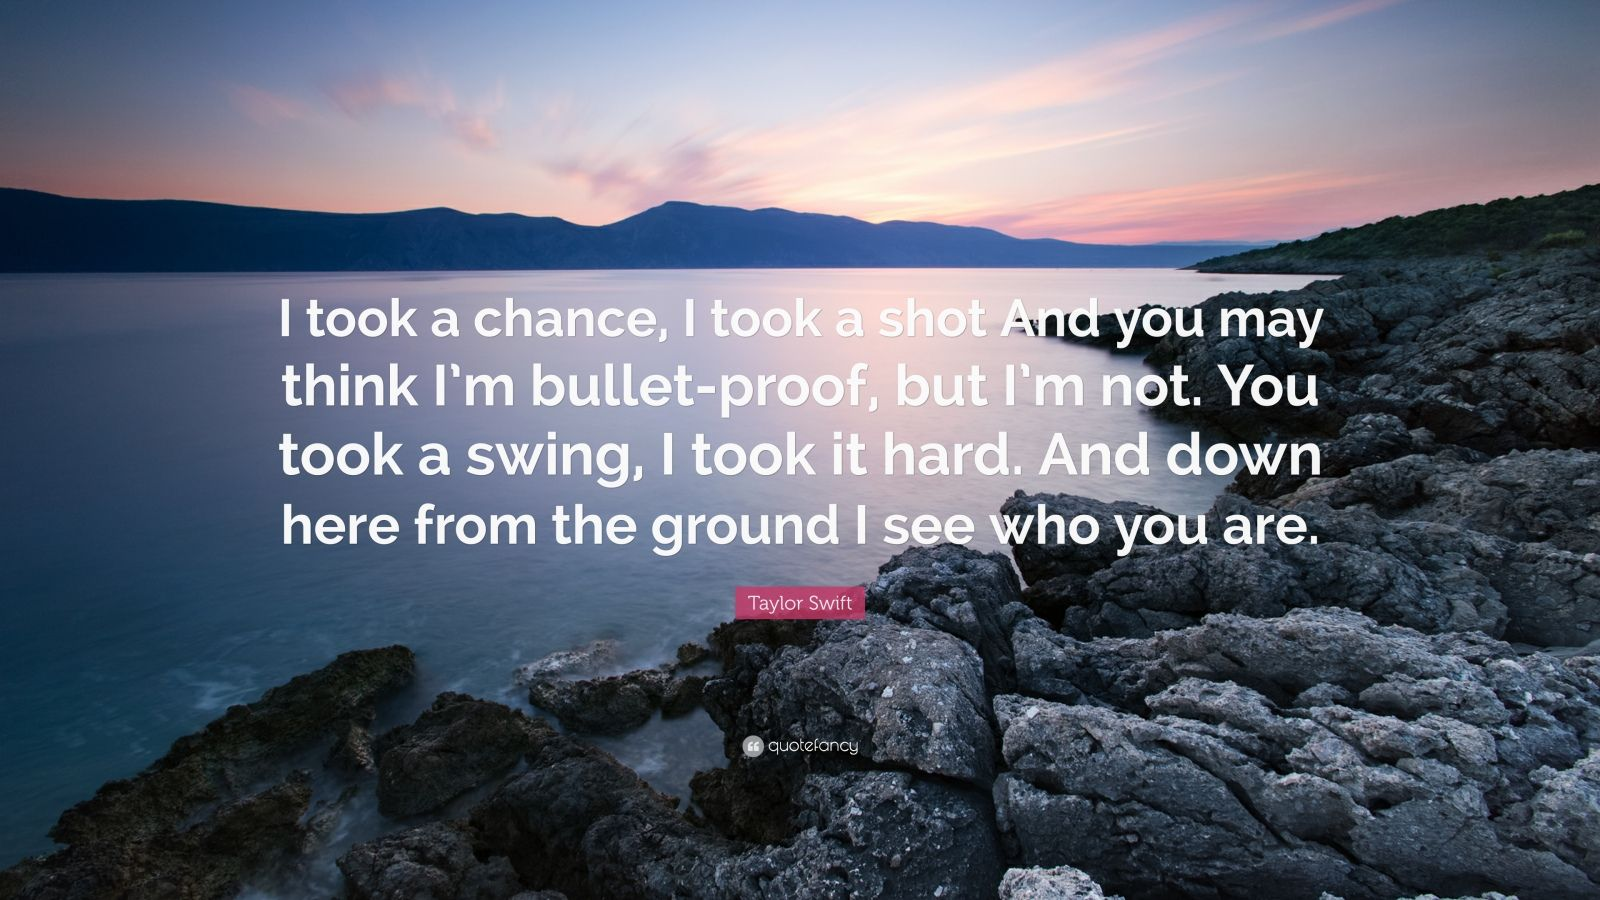 """Taylor Swift Quote: """"I took a chance, I took a shot And you may think I'm bullet-proof, but I'm not. You took a swing, I took it hard. And down here from the ground I see who you are."""""""